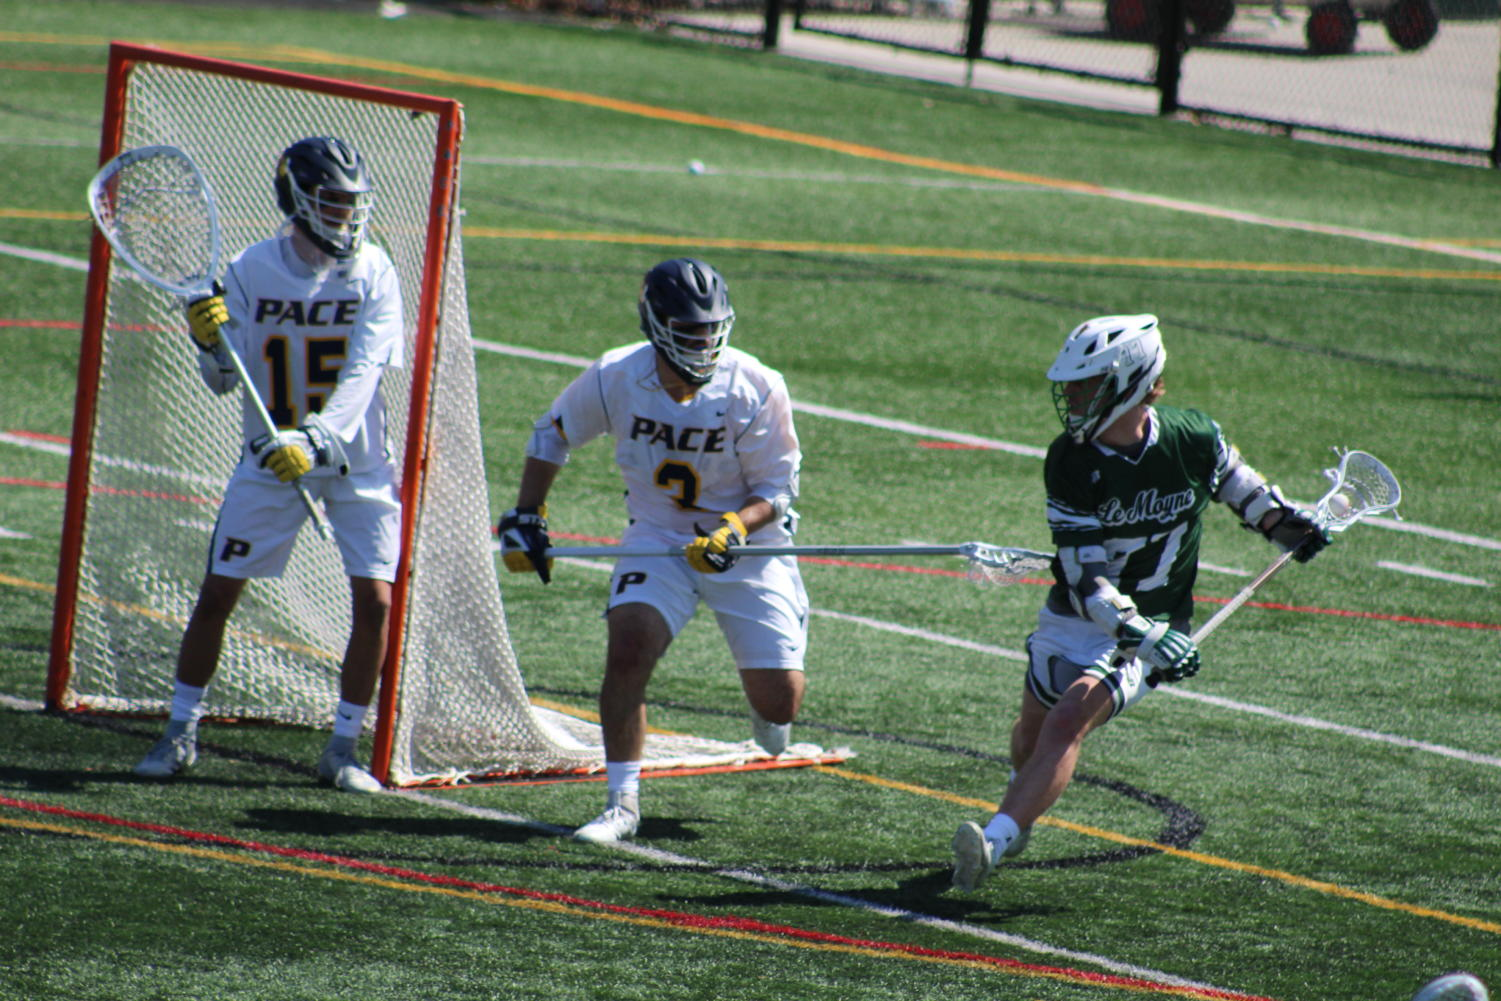 Pace men's lacrosse fell to sixth-ranked Le Moyne this past Saturday. Read about the other games that went down on the weekend.